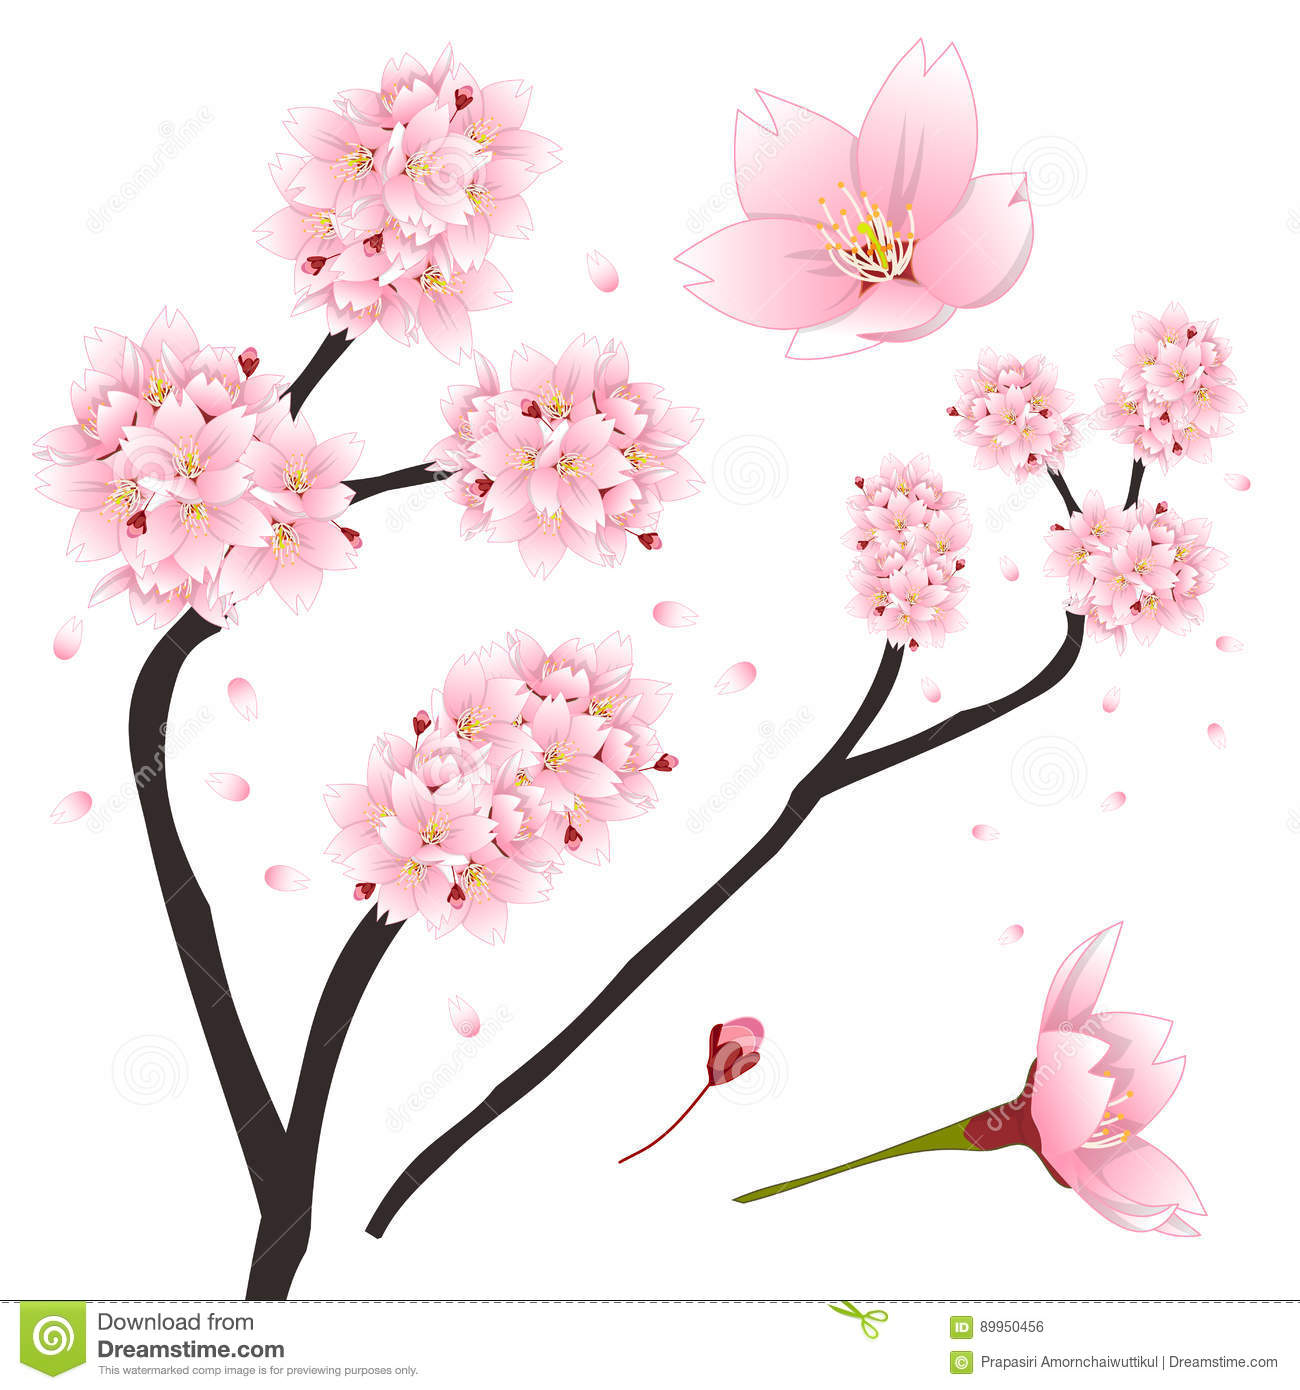 Prunus Blossom clipart #11, Download drawings